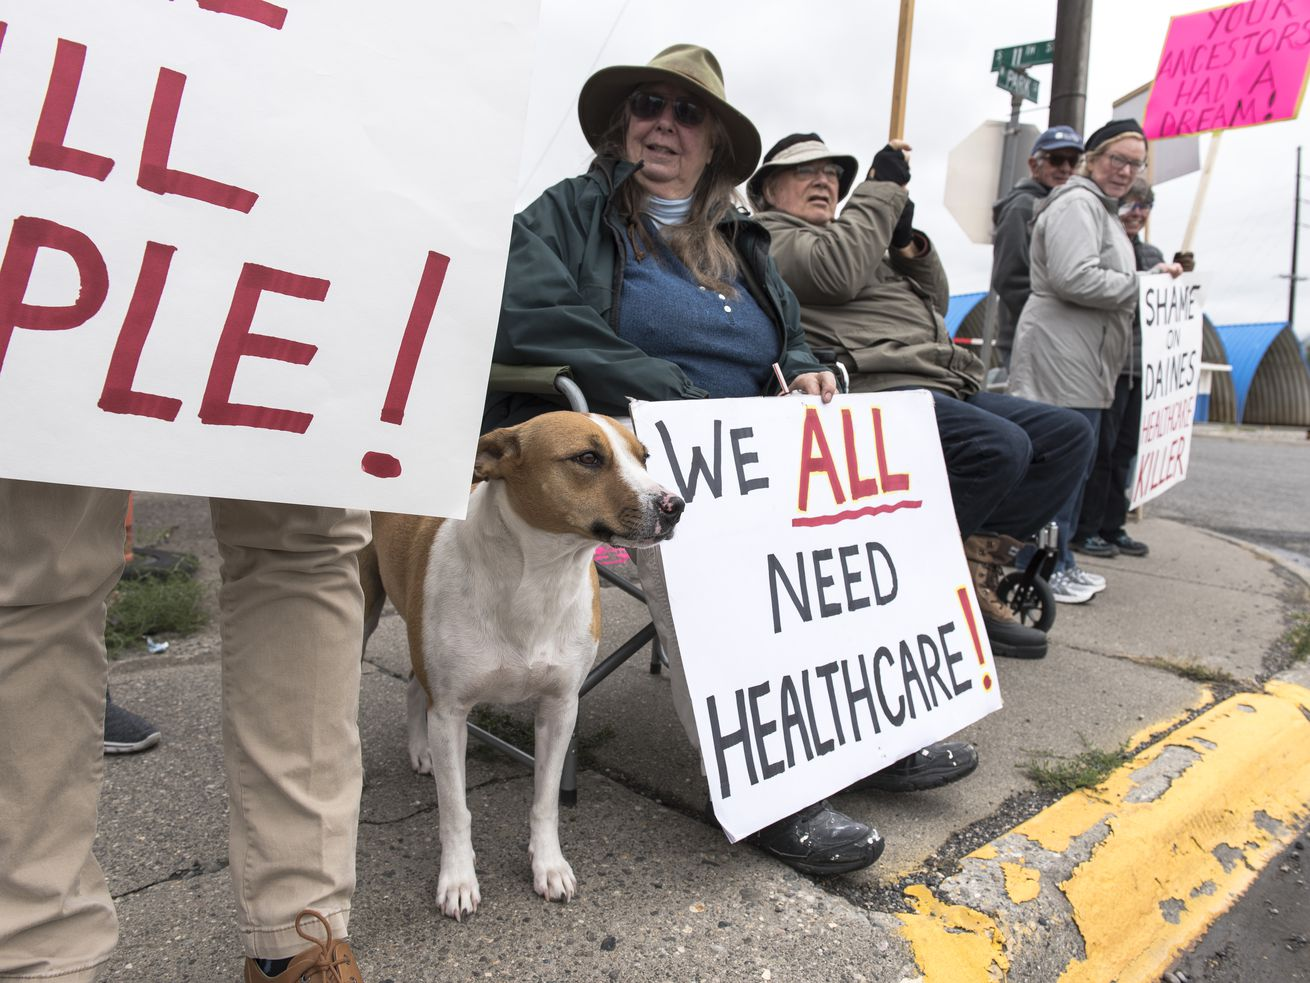 Protesters hold a small, peaceful demonstration in support of health care on September 23, 2017, in Livingston, Montana.